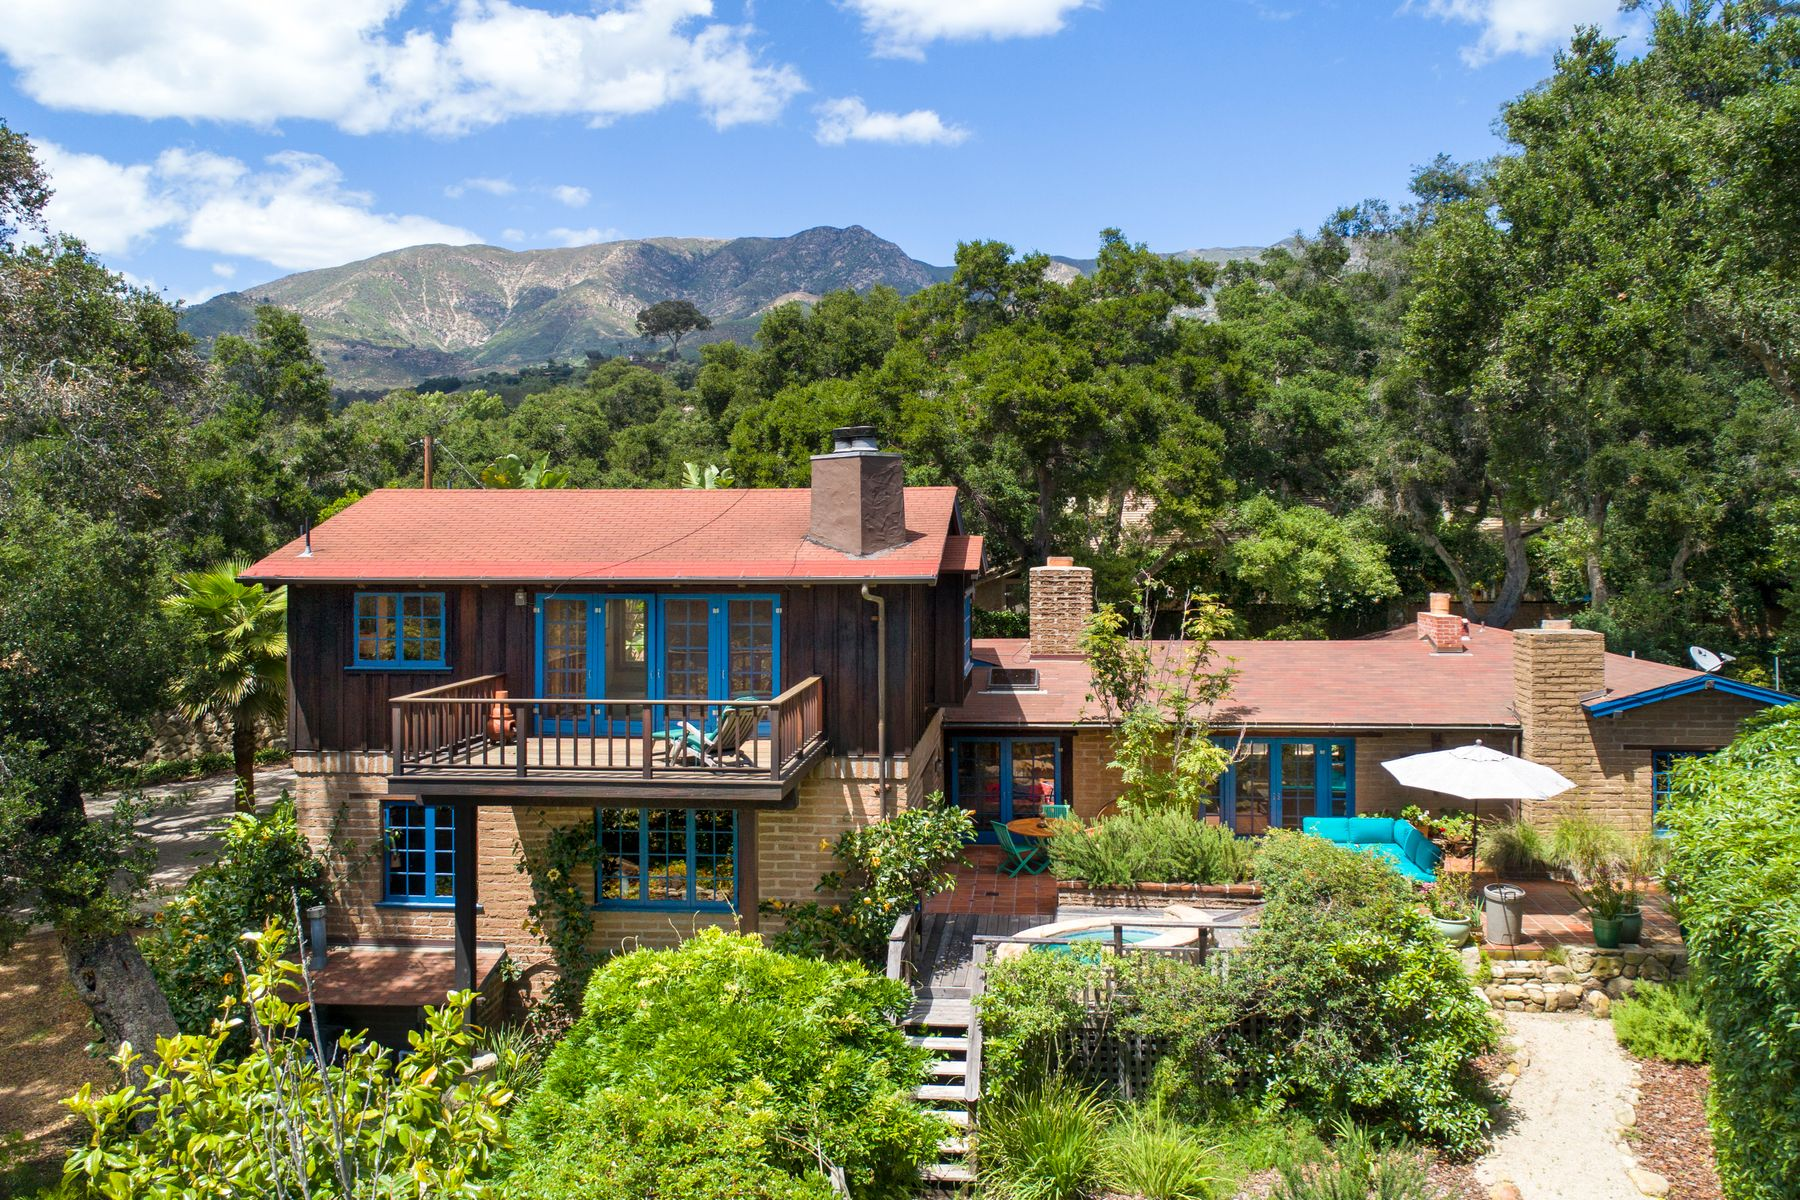 Property for Sale at Beautiful Adobe in Rural Montecito 2942 Torito Road Santa Barbara, California 93108 United States